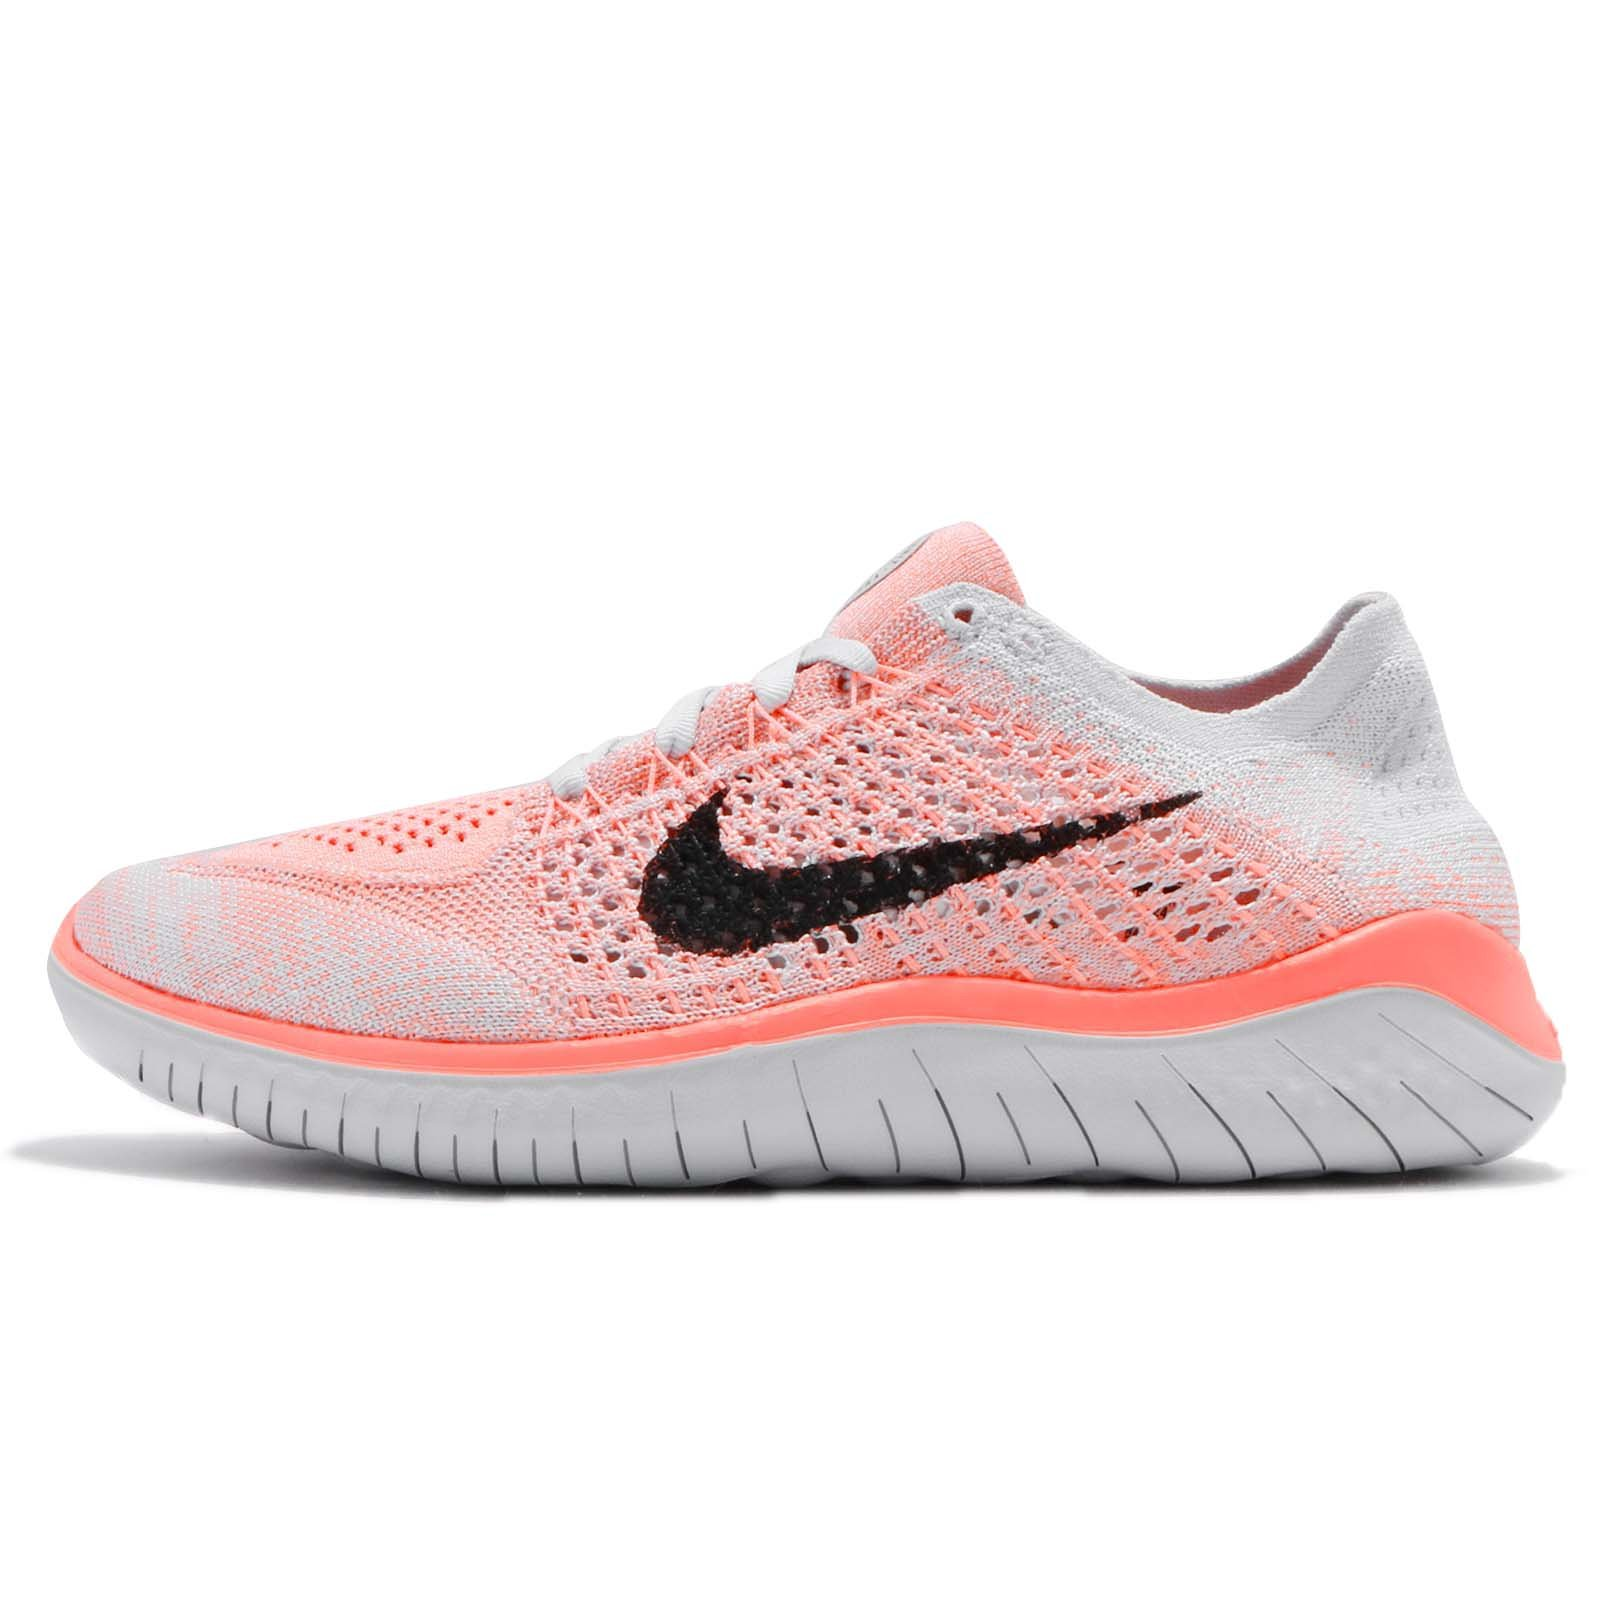 852e10b58f0bd Galleon - Nike Women s Free RN Flyknit 2018 Crimson Pulse Black-Pure  Platinum 10.0